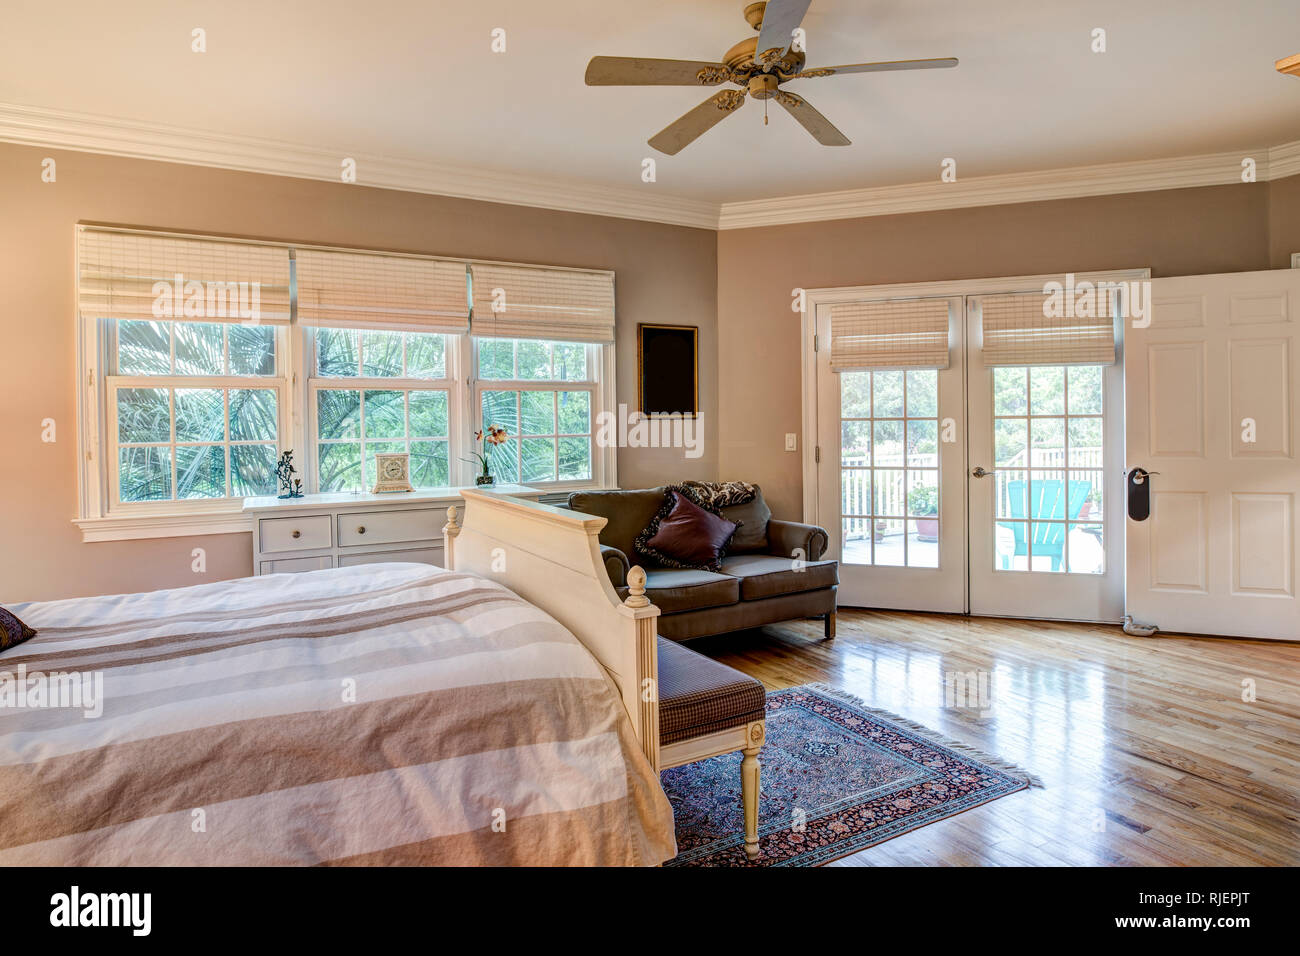 Tasteful Bedroom Interior With Hard Wood Floors And French Doors Stock Photo Alamy